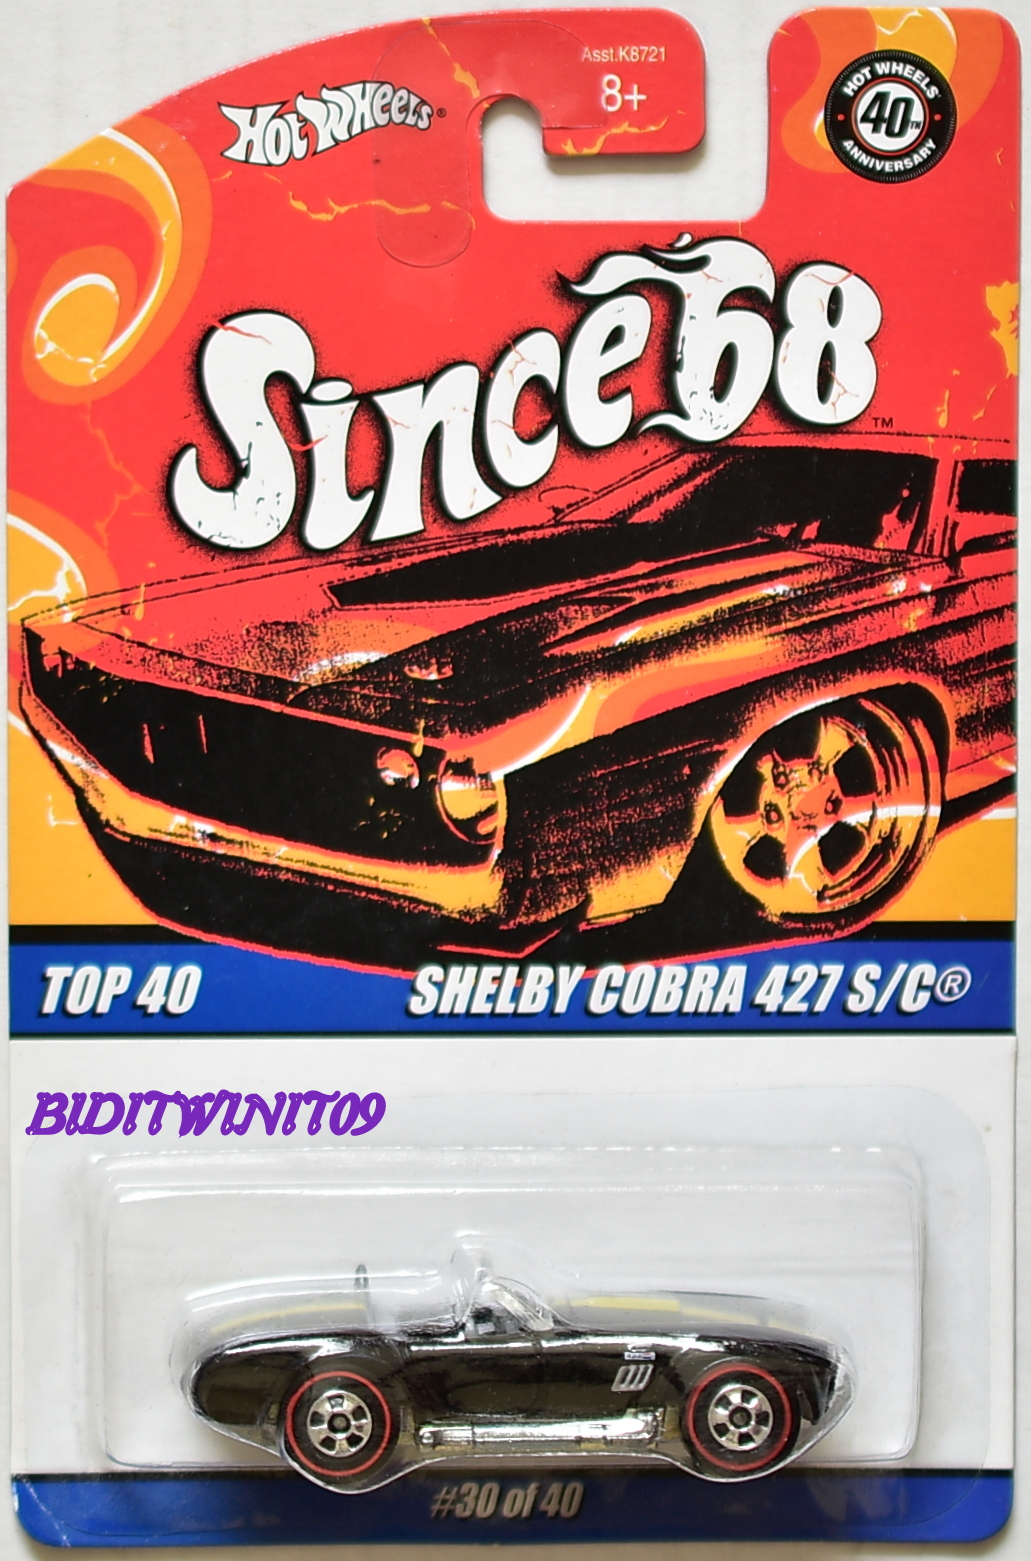 HOT WHEELS SINCE 68 TOP 40 SHELBY COBRA 427 S/C #30/40 BLACK